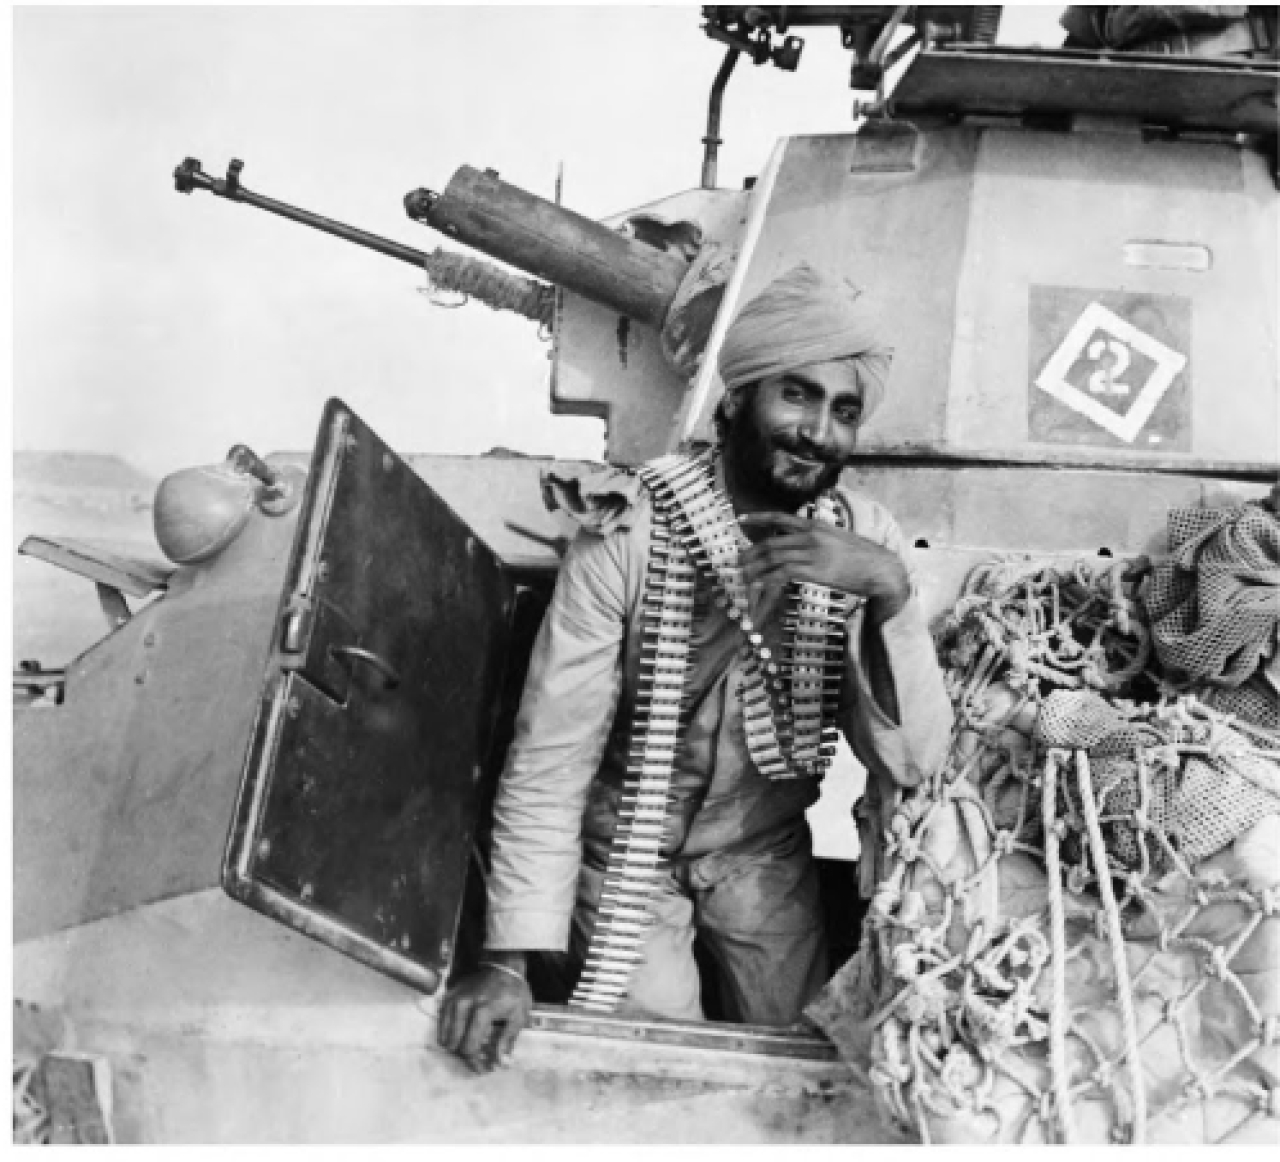 An Indian soldier of the Fourth Indian Division in a armoured vehicle with a bandolier around his neck in Egypt, 1941.